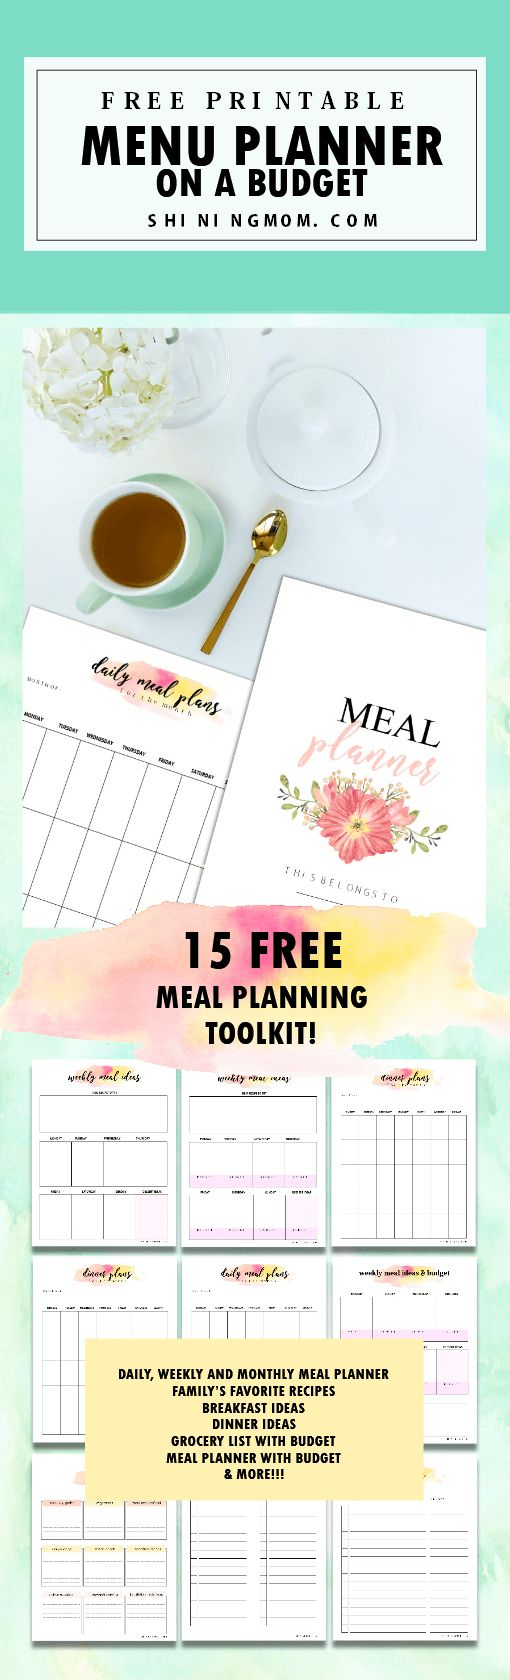 This amazing FREE menu planner printable will help you plan your meals on a budget. Print and use the 15 meal planning printables for free!